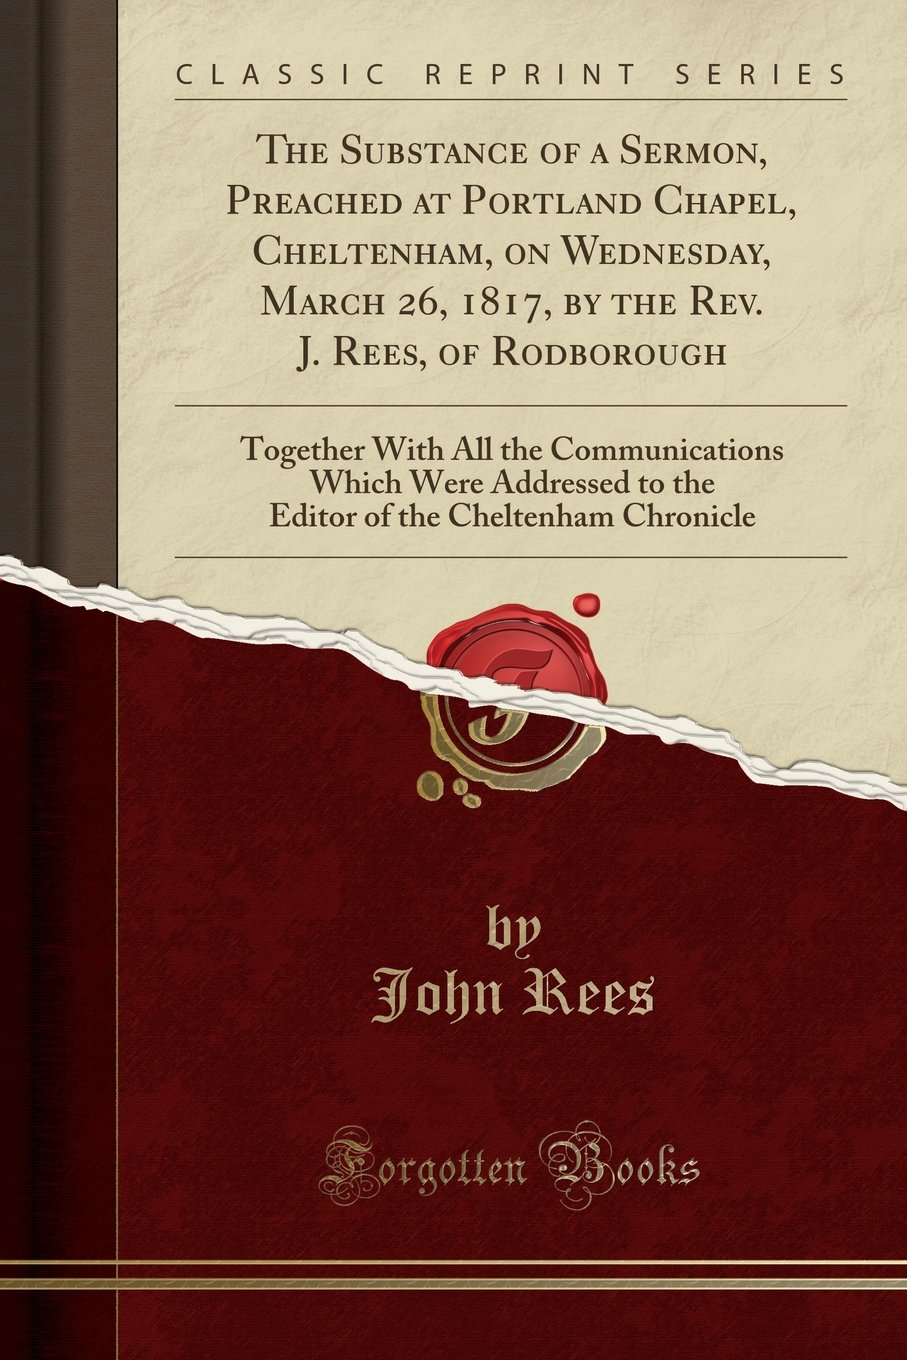 The Substance of a Sermon, Preached at Portland Chapel, Cheltenham, on Wednesday, March 26, 1817, by the Rev. J. Rees, of Rodborough: Together With ... of the Cheltenham Chronicle (Classic Reprint) ebook